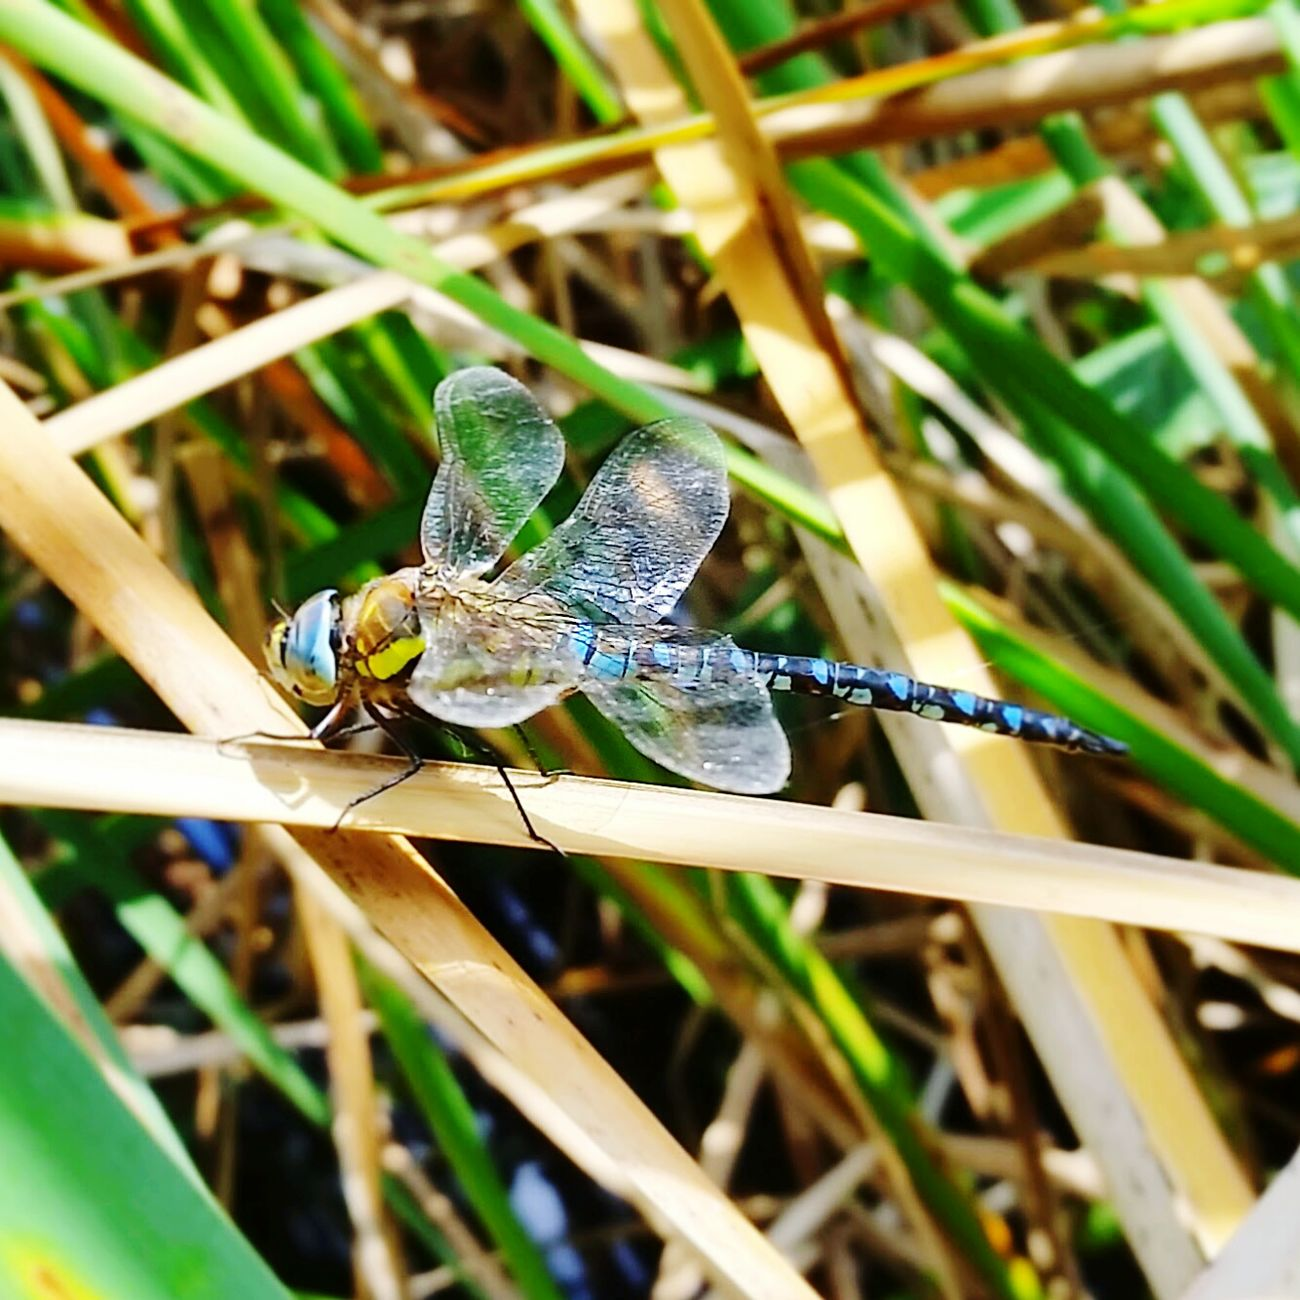 My Best Photo 2014 Dragonfly Nature Leeds To Liverpool Canal Litherland